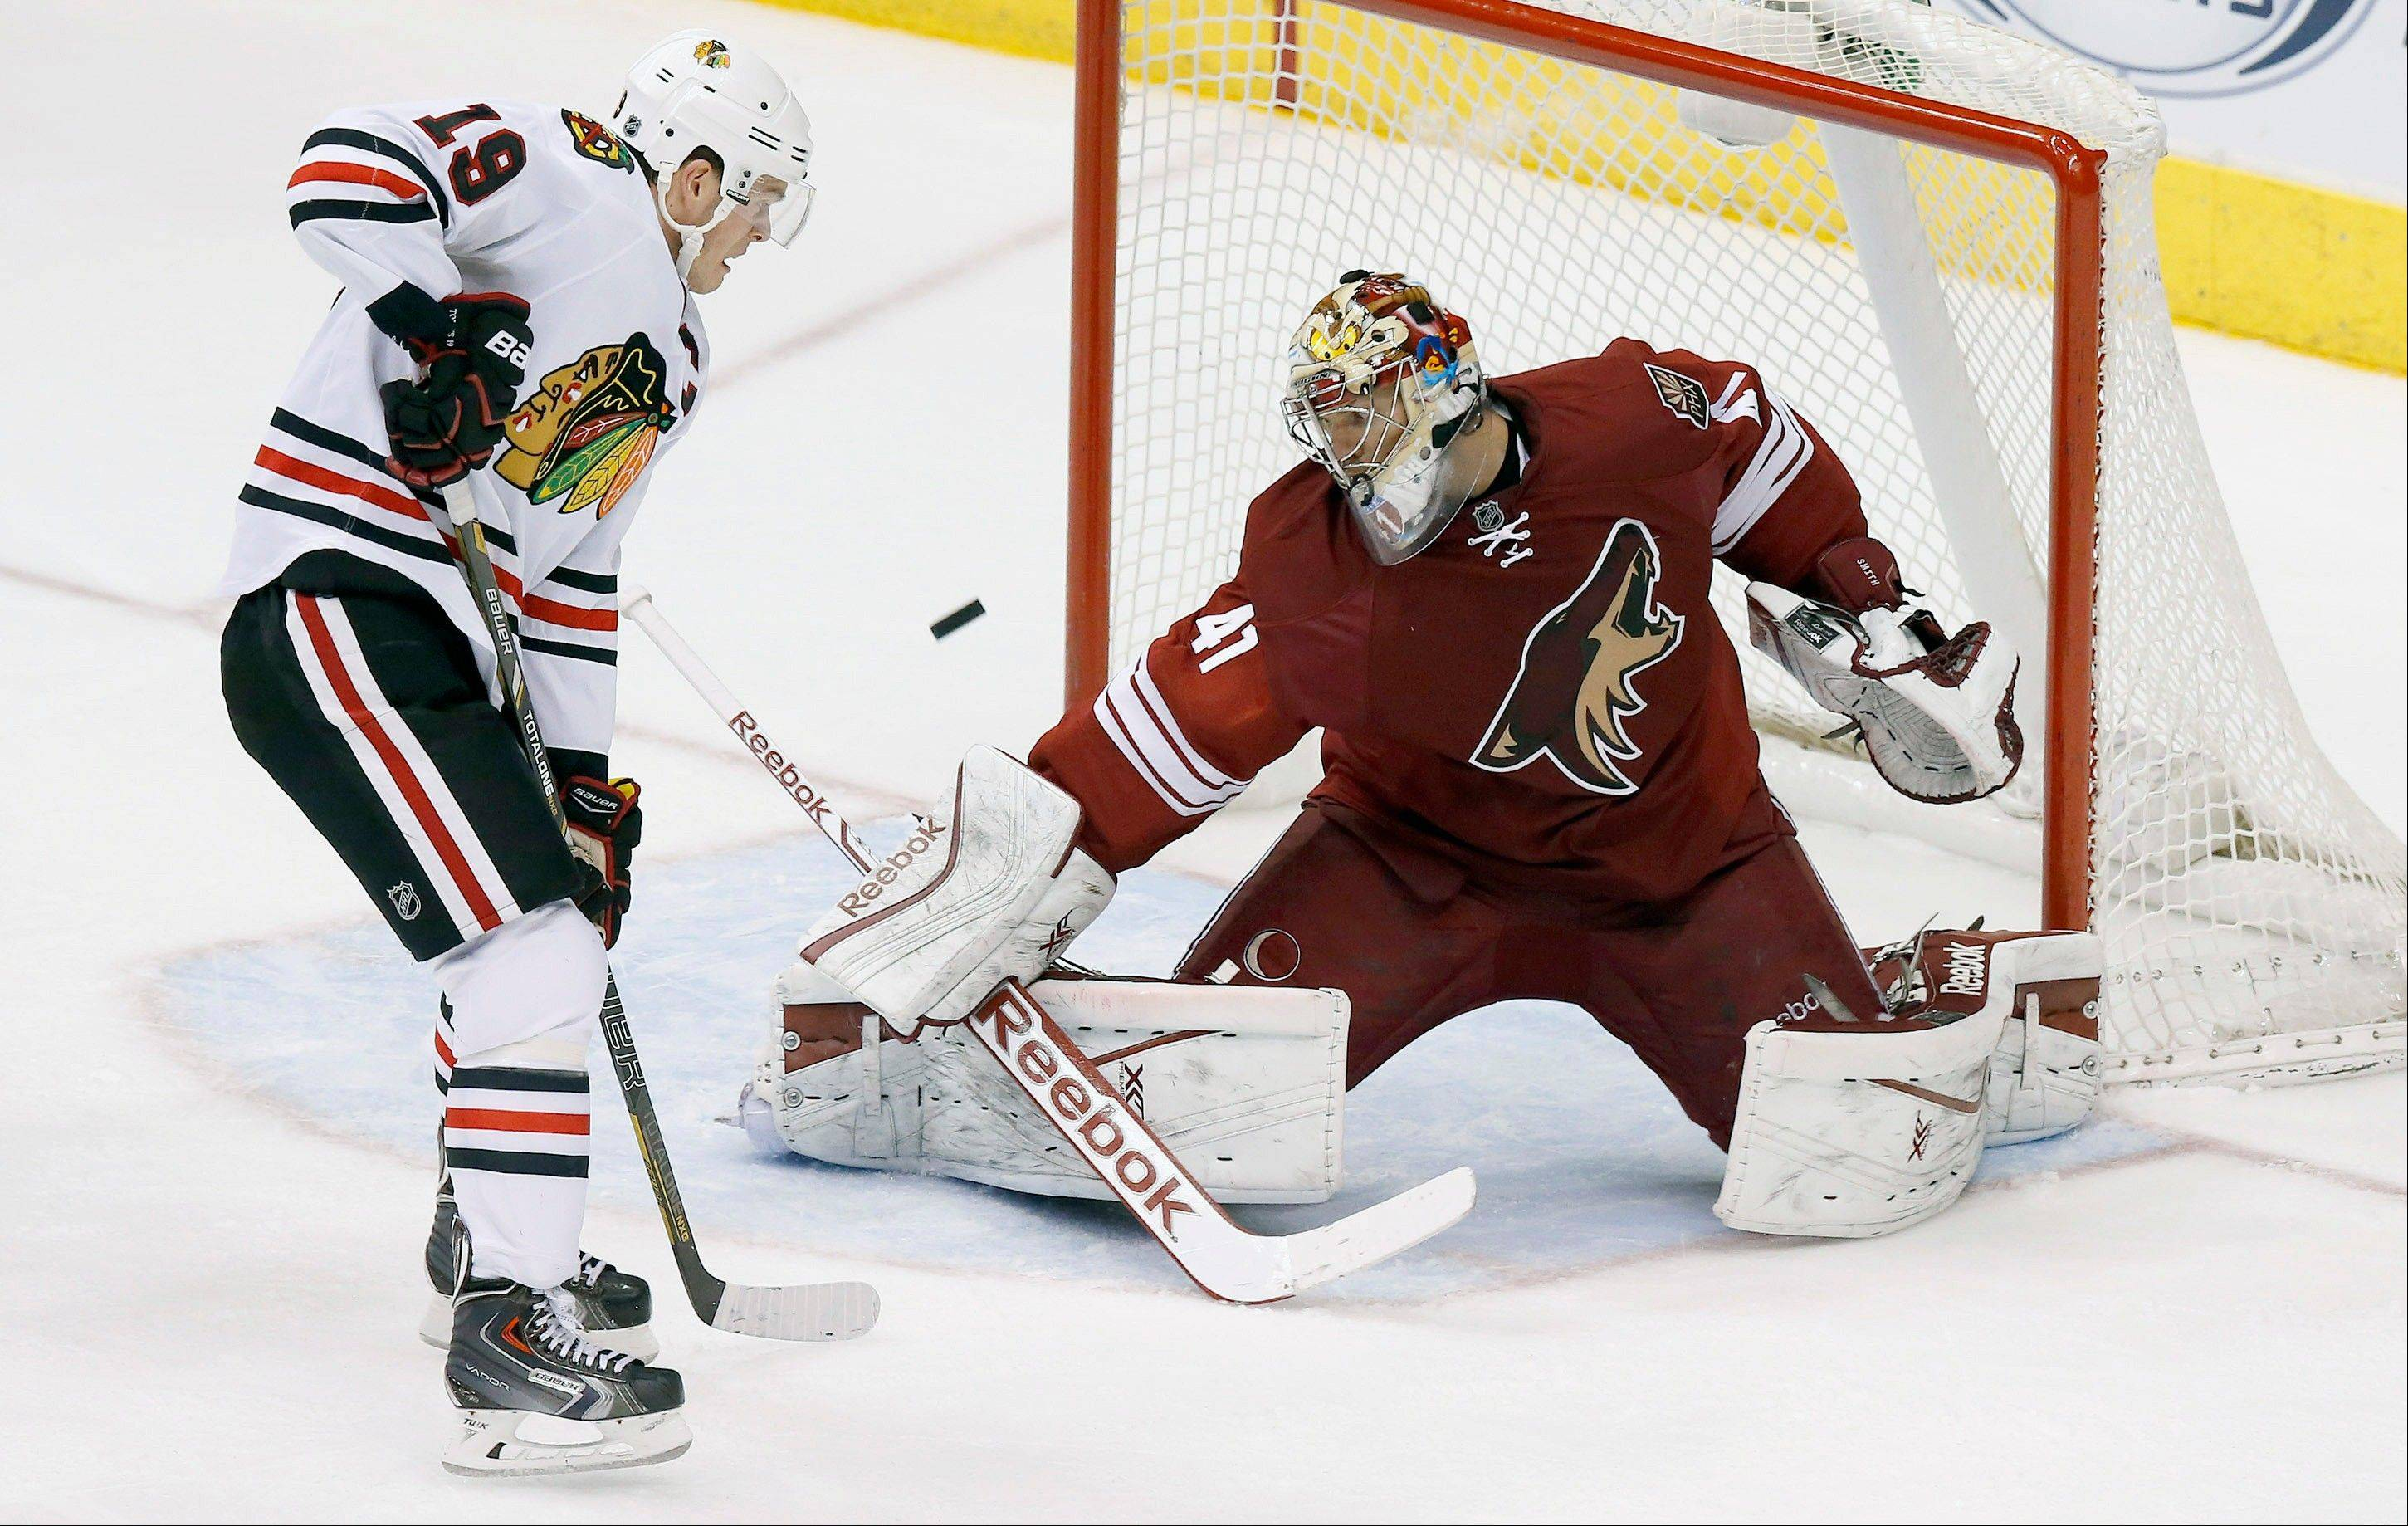 Phoenix Coyotes' Mike Smith (41) makes a save on a rebound shot by Chicago Blackhawks' Jonathan Toews (19) during the second period in an NHL hockey game, Friday Feb. 7, 2014, in Glendale, Ariz. (AP Photo/Ross D. Franklin)